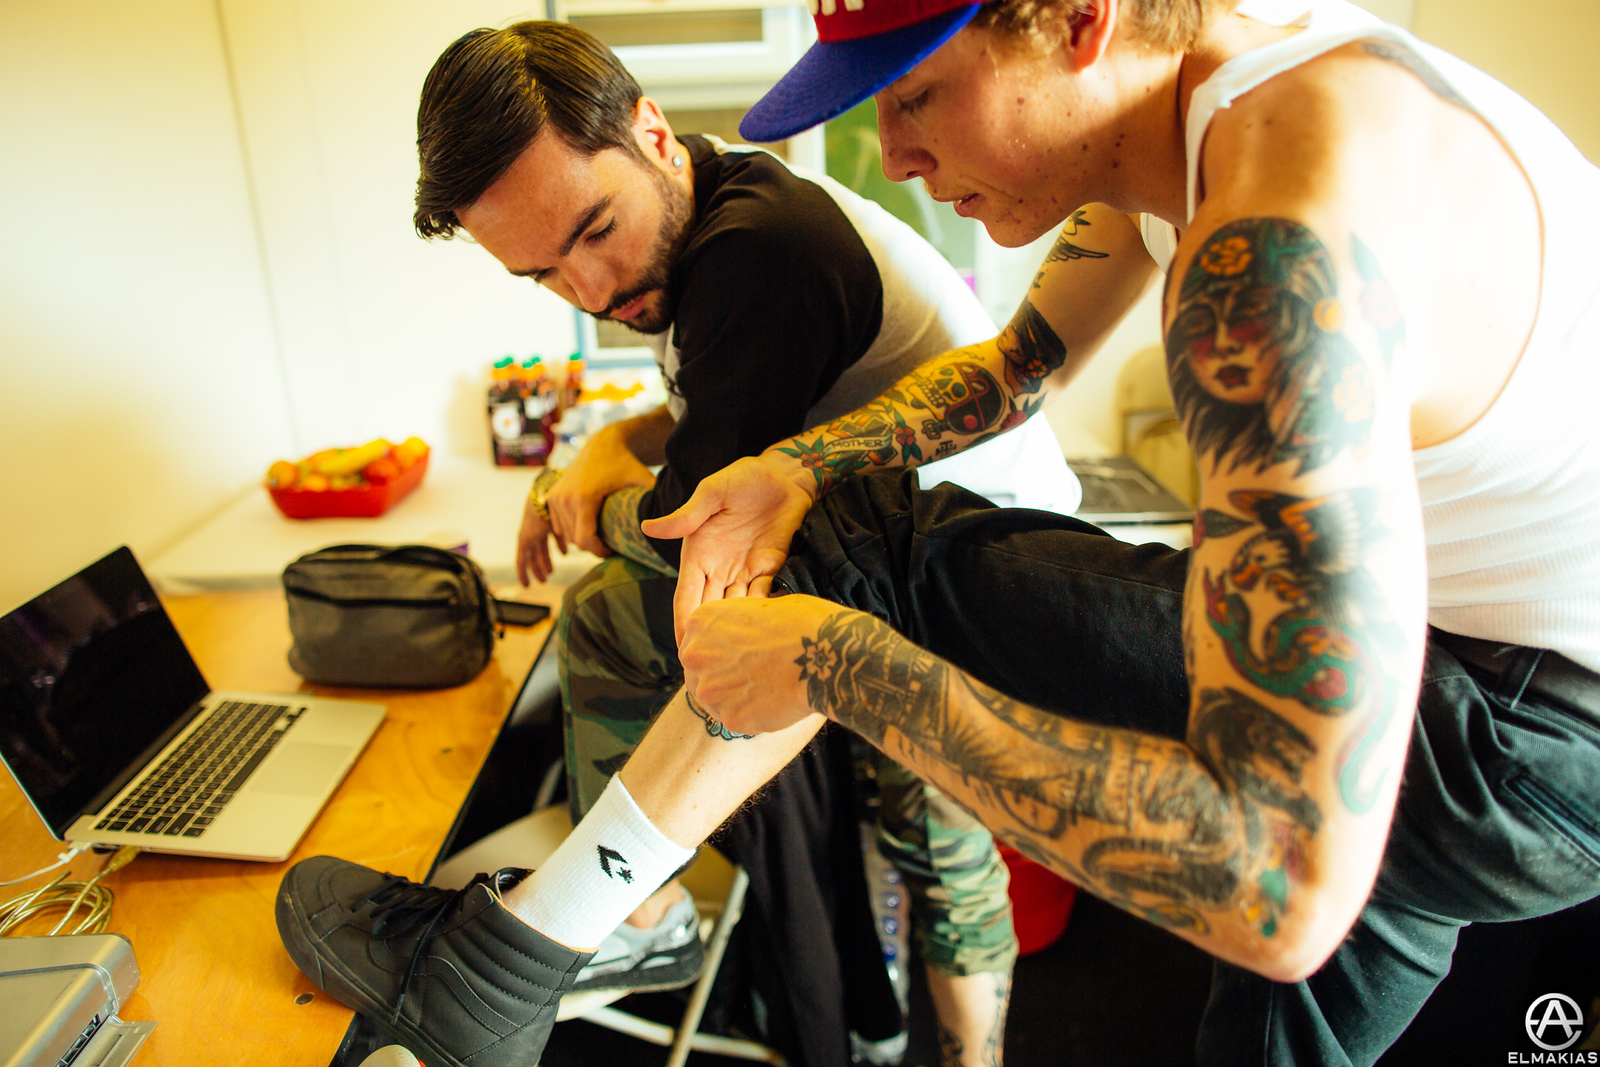 Jeremy McKinnon of A Day To Remember and Parker Cannon of The Story So Far talking about taking care of a tattoo or something.... backstage at Reading Festival